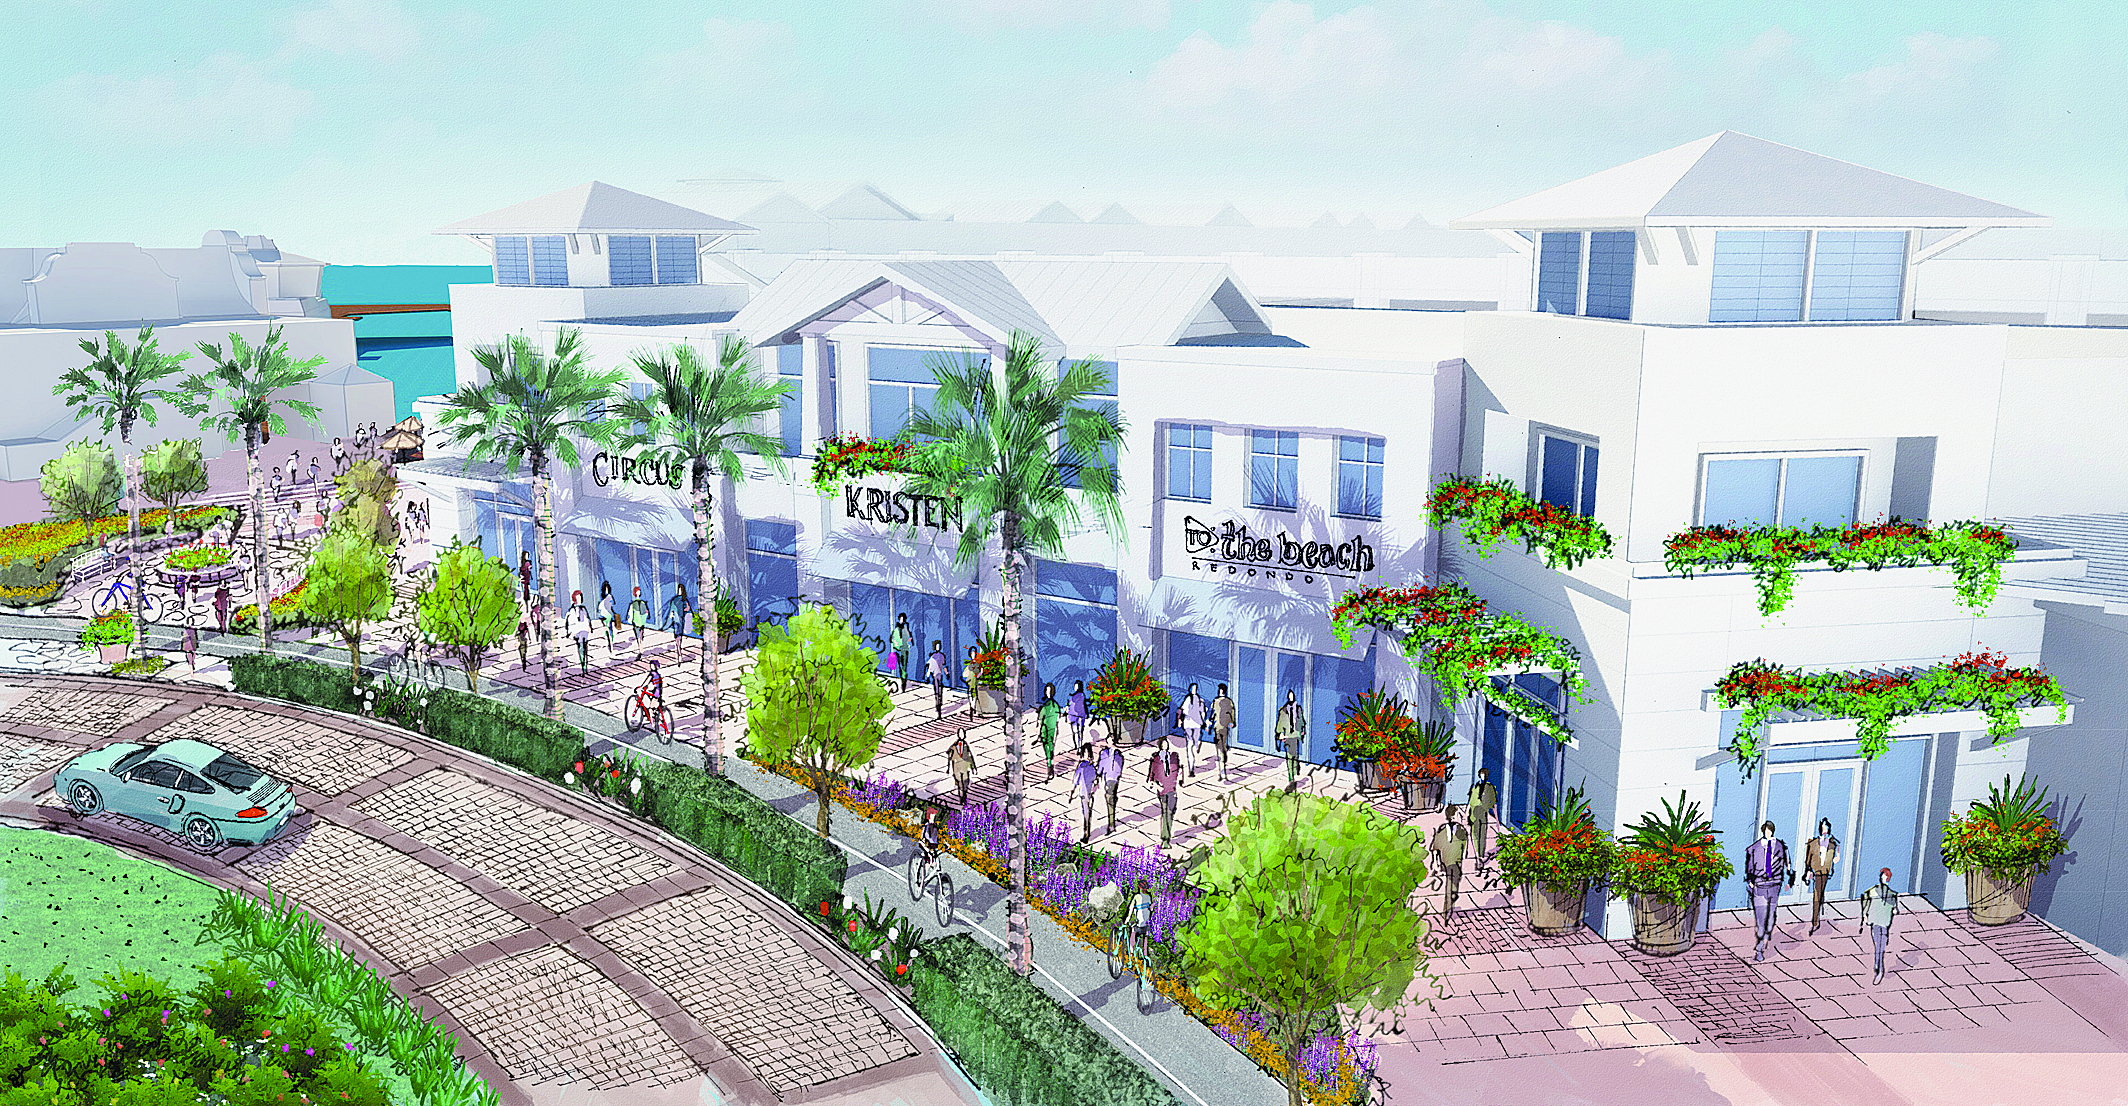 Board of Harbor Commissioners discusses Ports O' Call Village